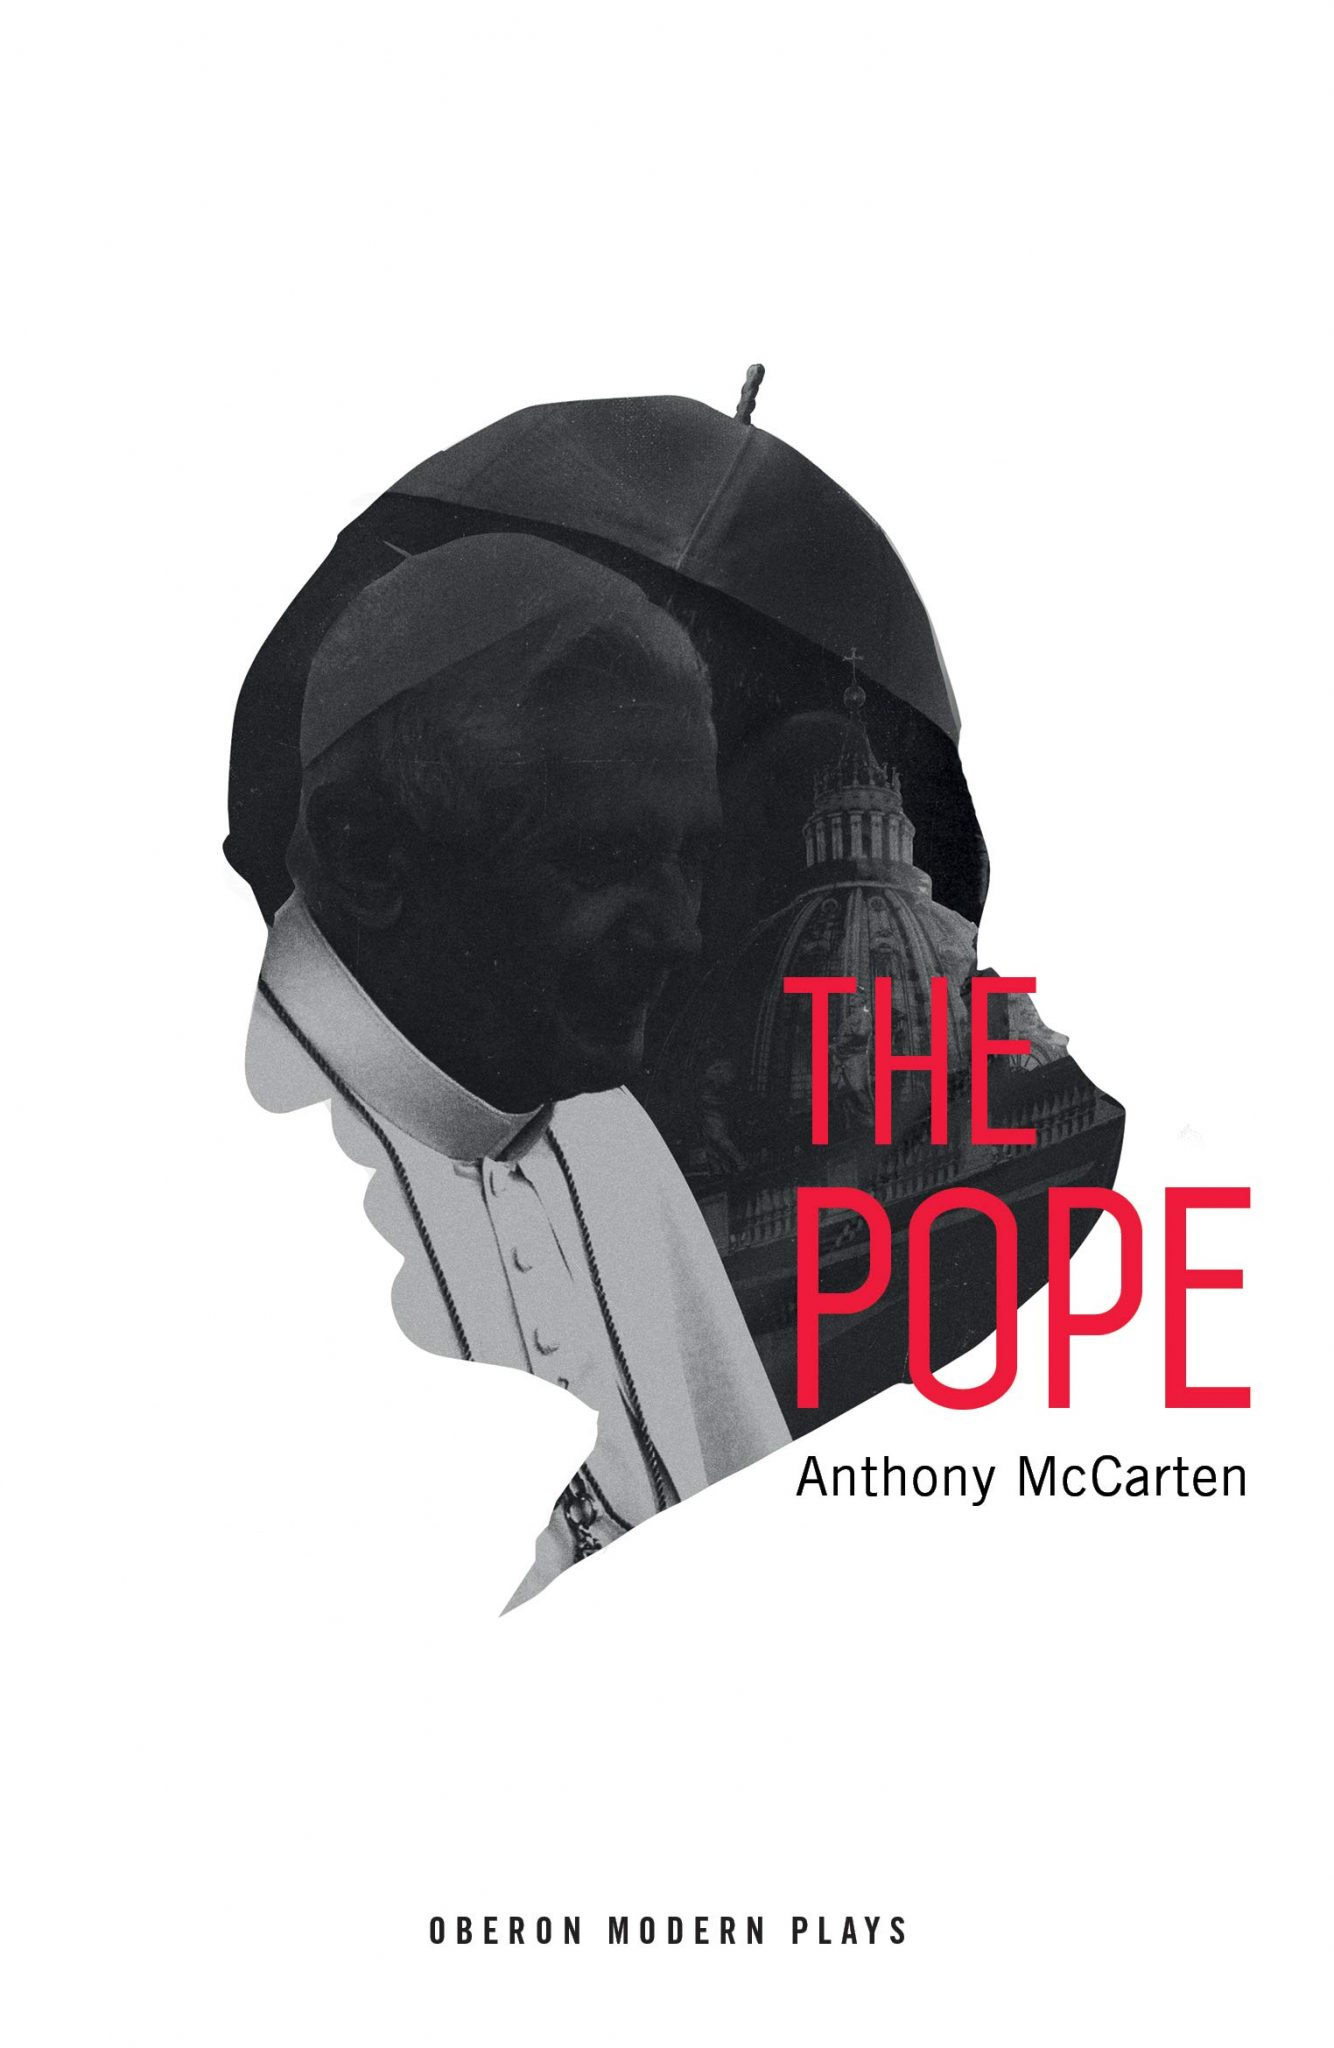 The pope anthony mccarten